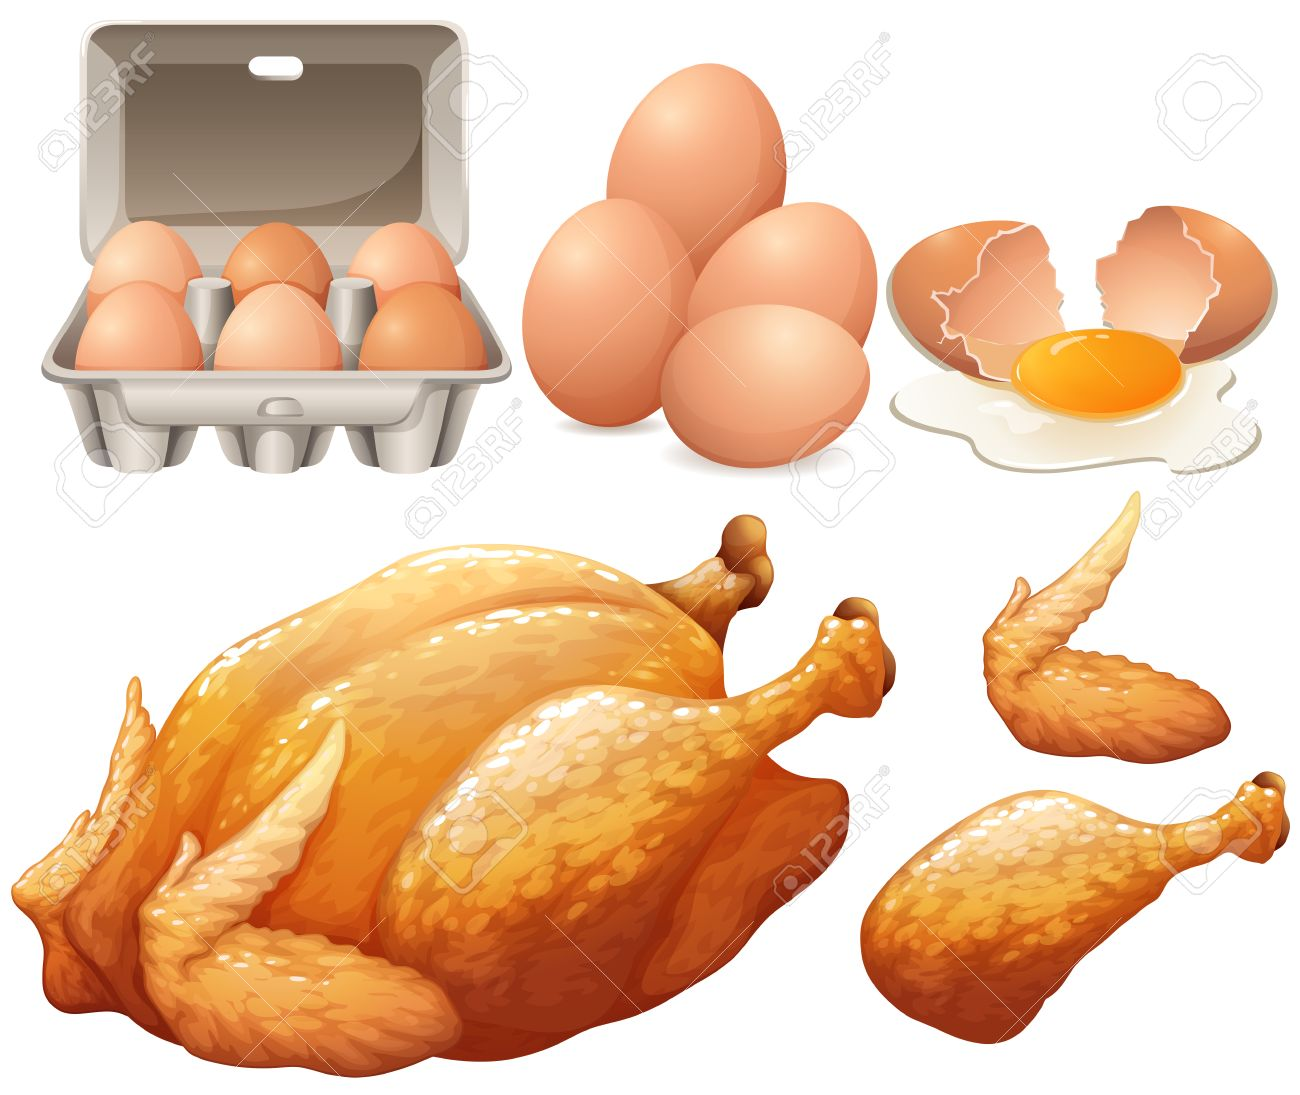 Fried chicken and fresh eggs illustration.